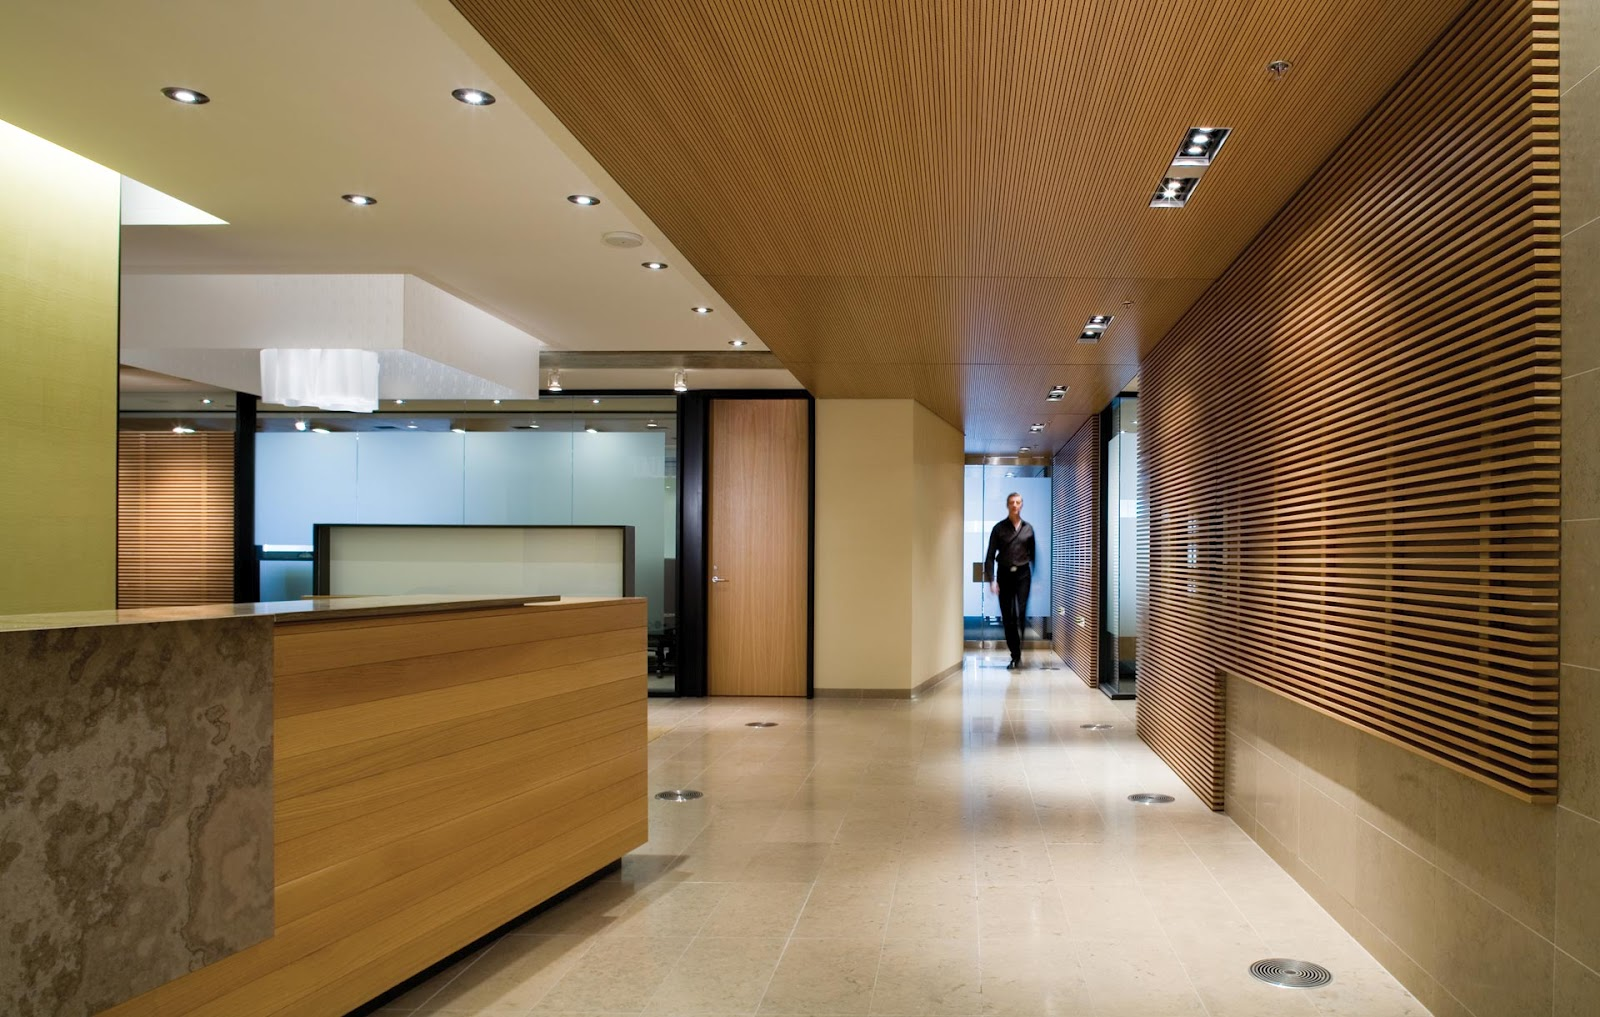 corporate office interior. Corporate Office Interior Design | Aquilon Capital Corporation Toronto Ontario Canada Taylor Smyth Architects I